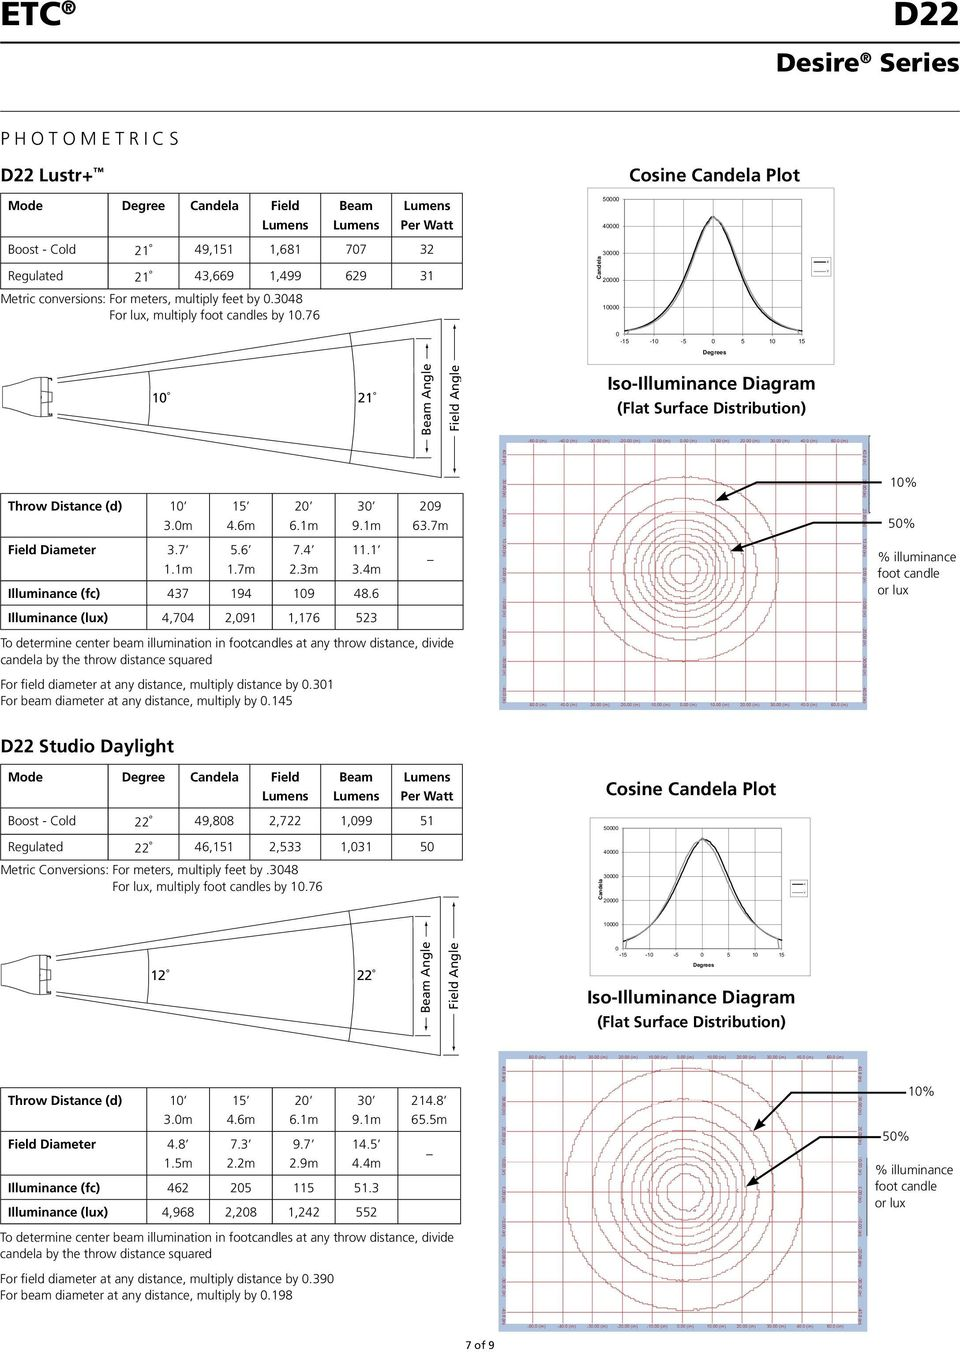 76 Candela 30000 20000 10000 0-15 -10-5 0 5 10 15 Degrees 10 21 Beam Angle Field Angle Iso-Illuminance Diagram (Flat Surface Distribution) 10% Throw Distance (d) 10 3.0m 15 4.6m 20 6.1m 30 9.